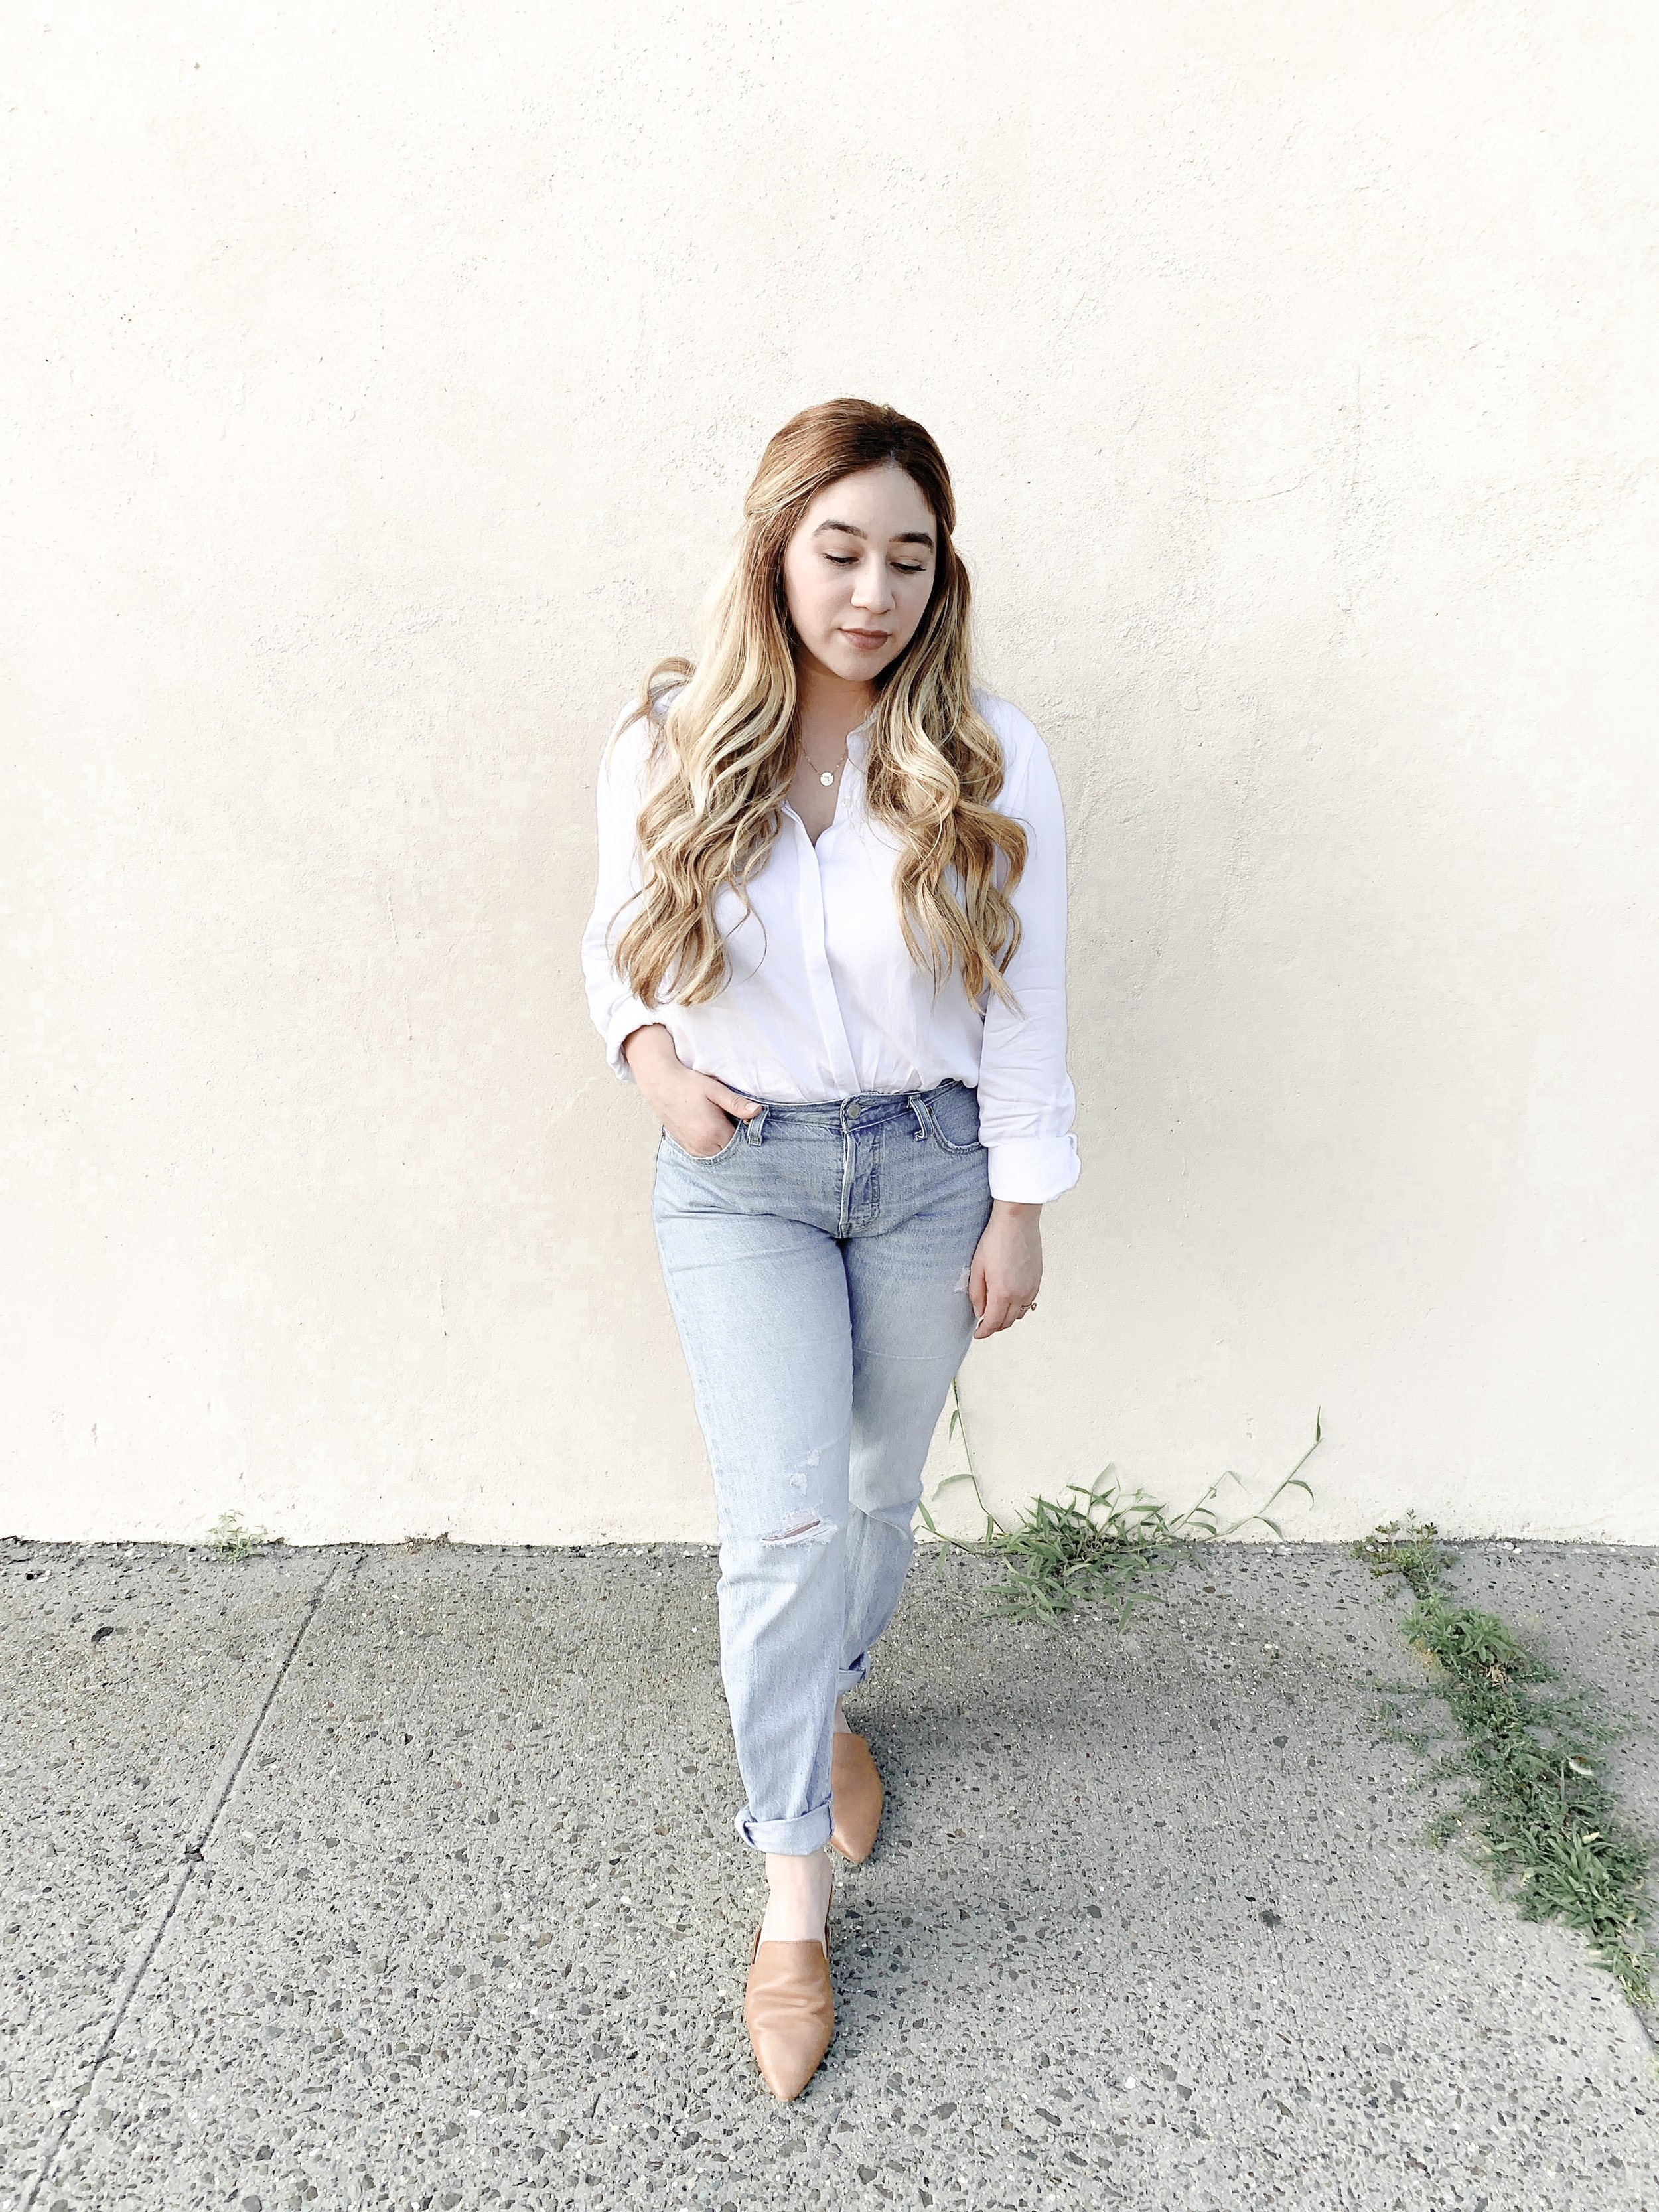 Top: thrifted  Bottoms: Thrifted Levis  Shoes: DSW